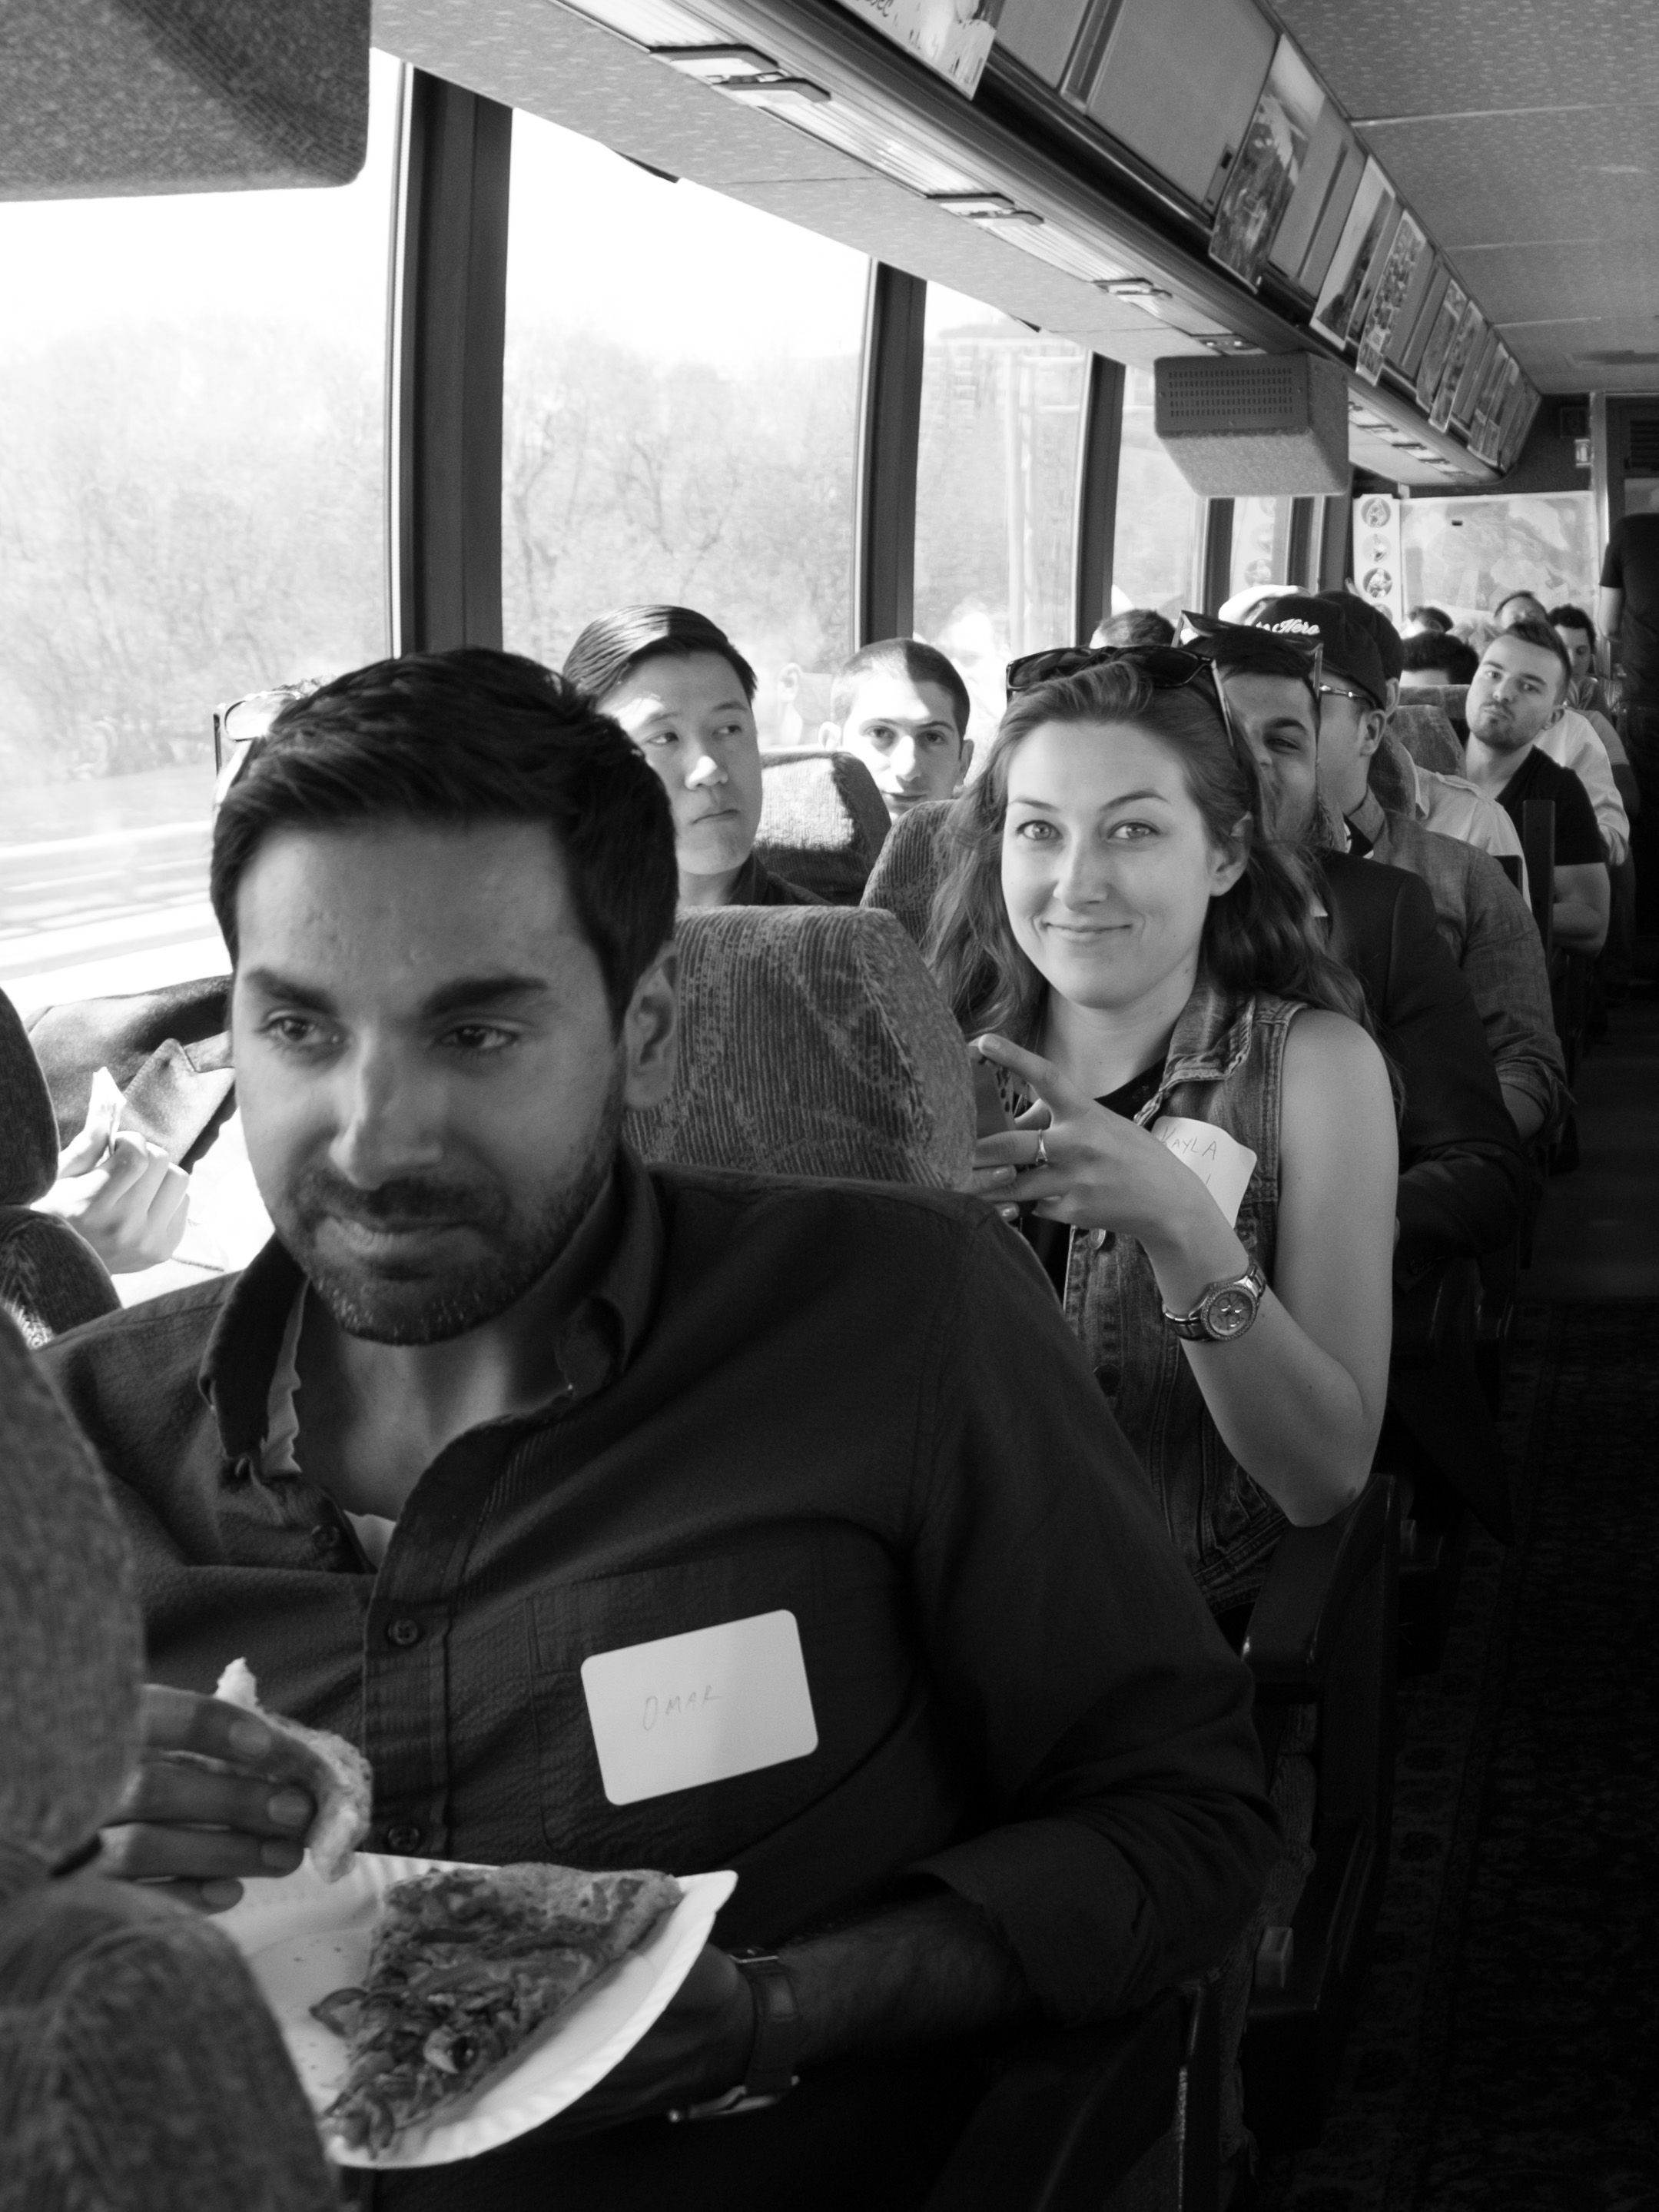 People enjoying pizza on a bus during Founder Fuel's Demo Day